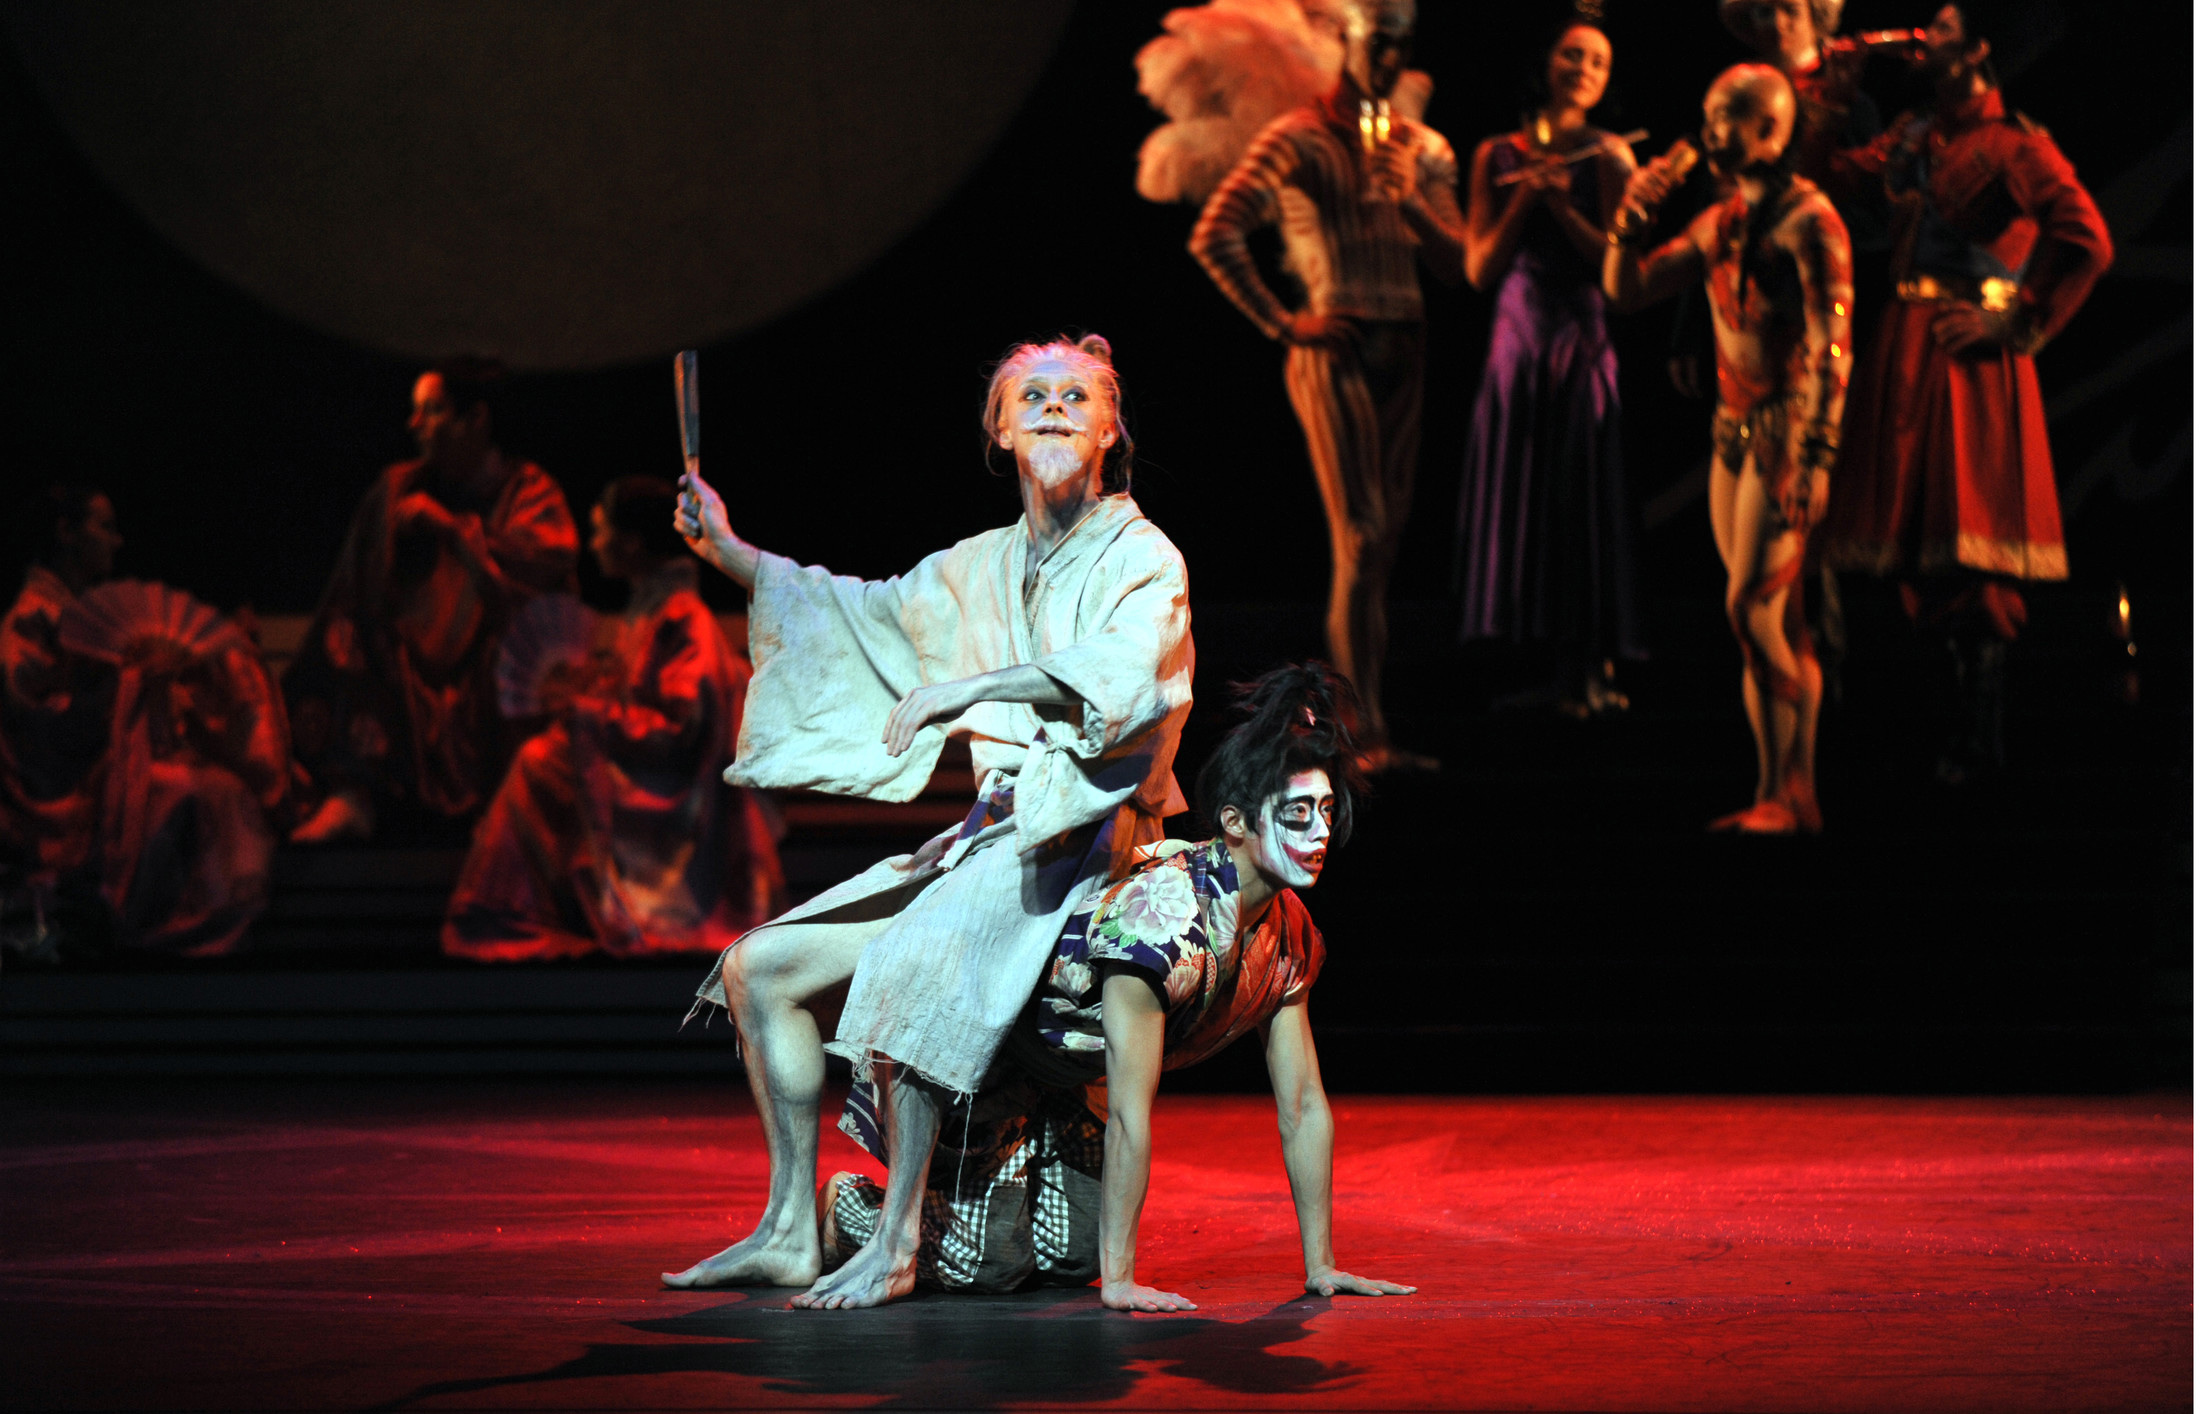 Rory Mackay as The Emperor and Tzu-Chao Chou as the Court Fool with Artist of Birmingham Royal Ballet; photo: Phil Hitchman